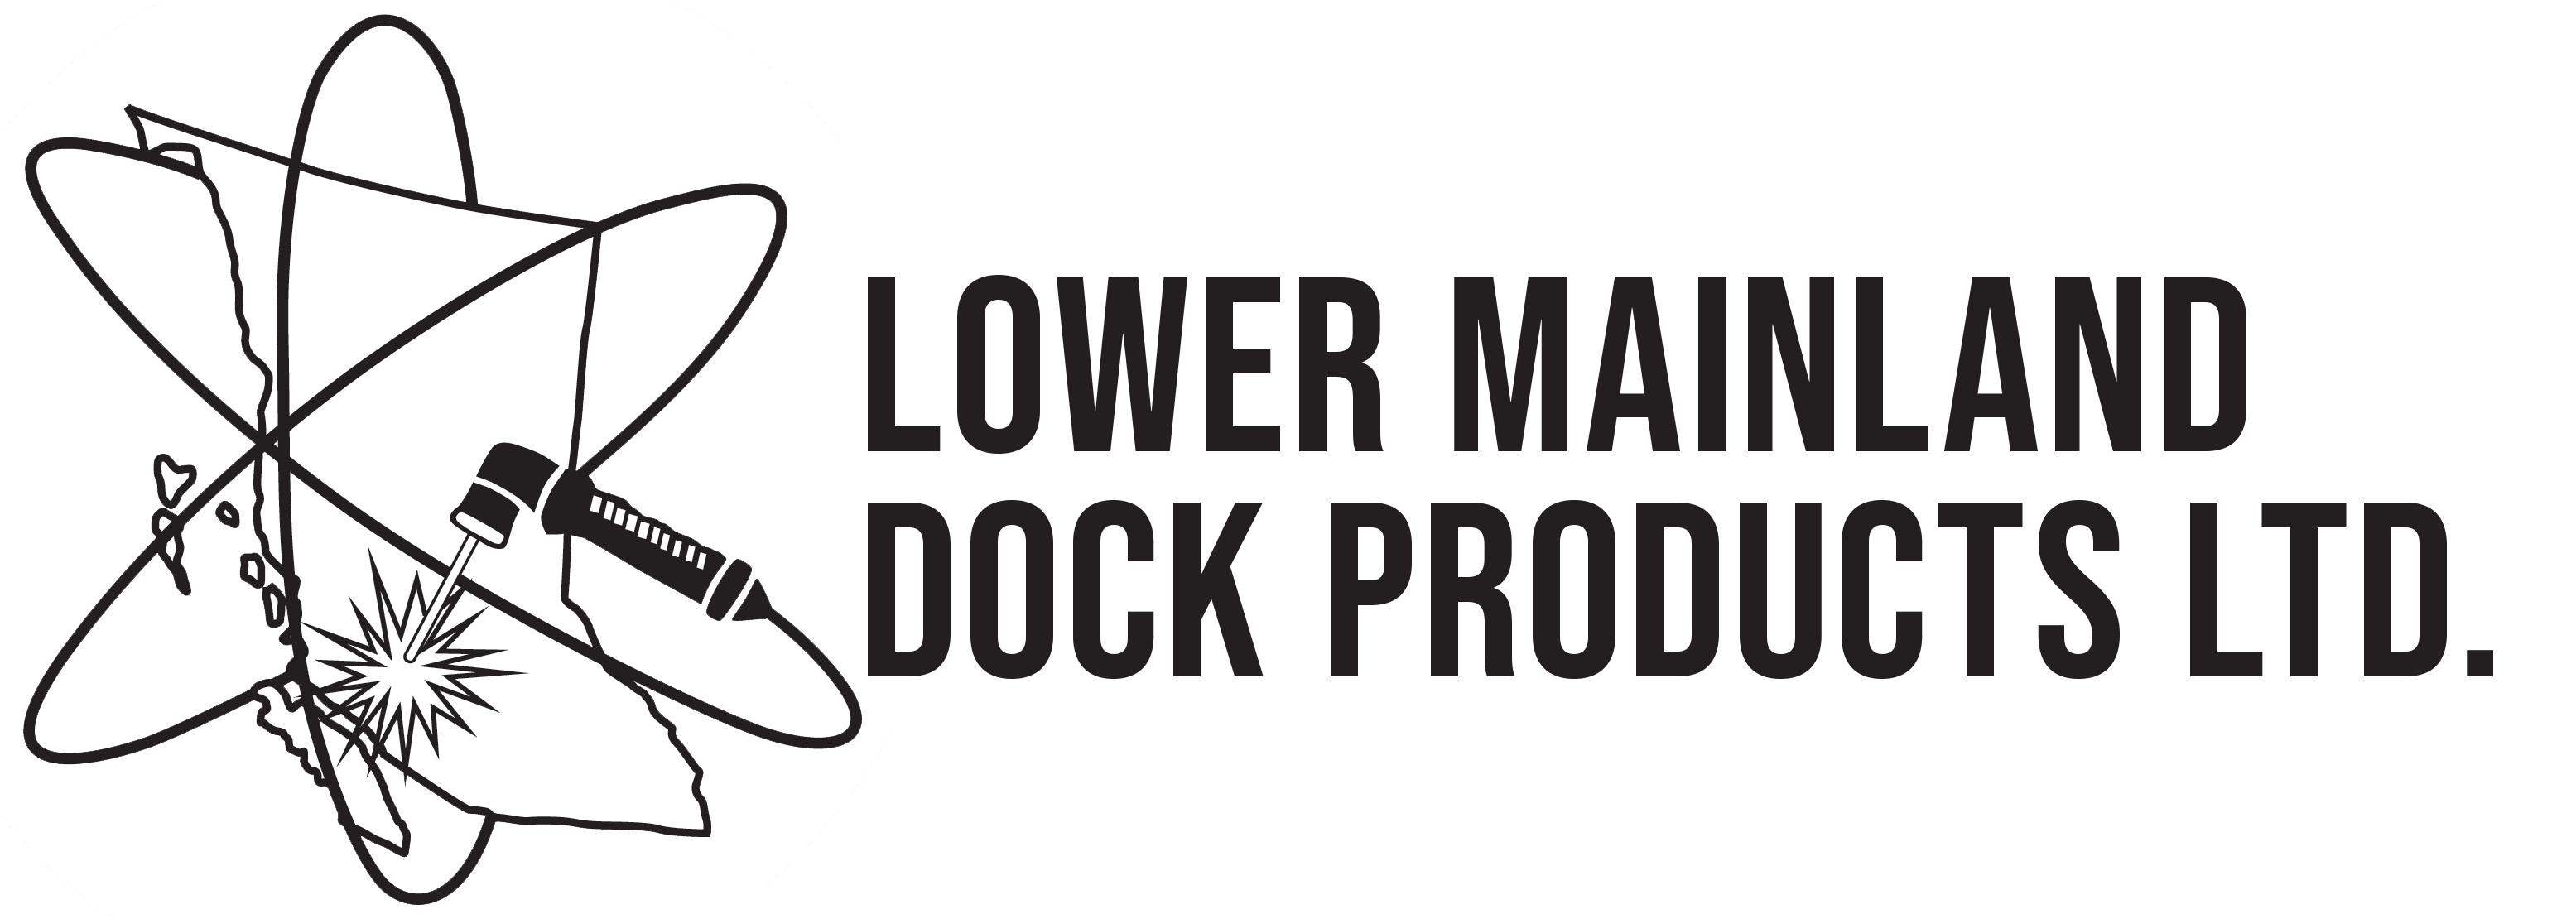 Lower Mainland Dock Products Ltd.